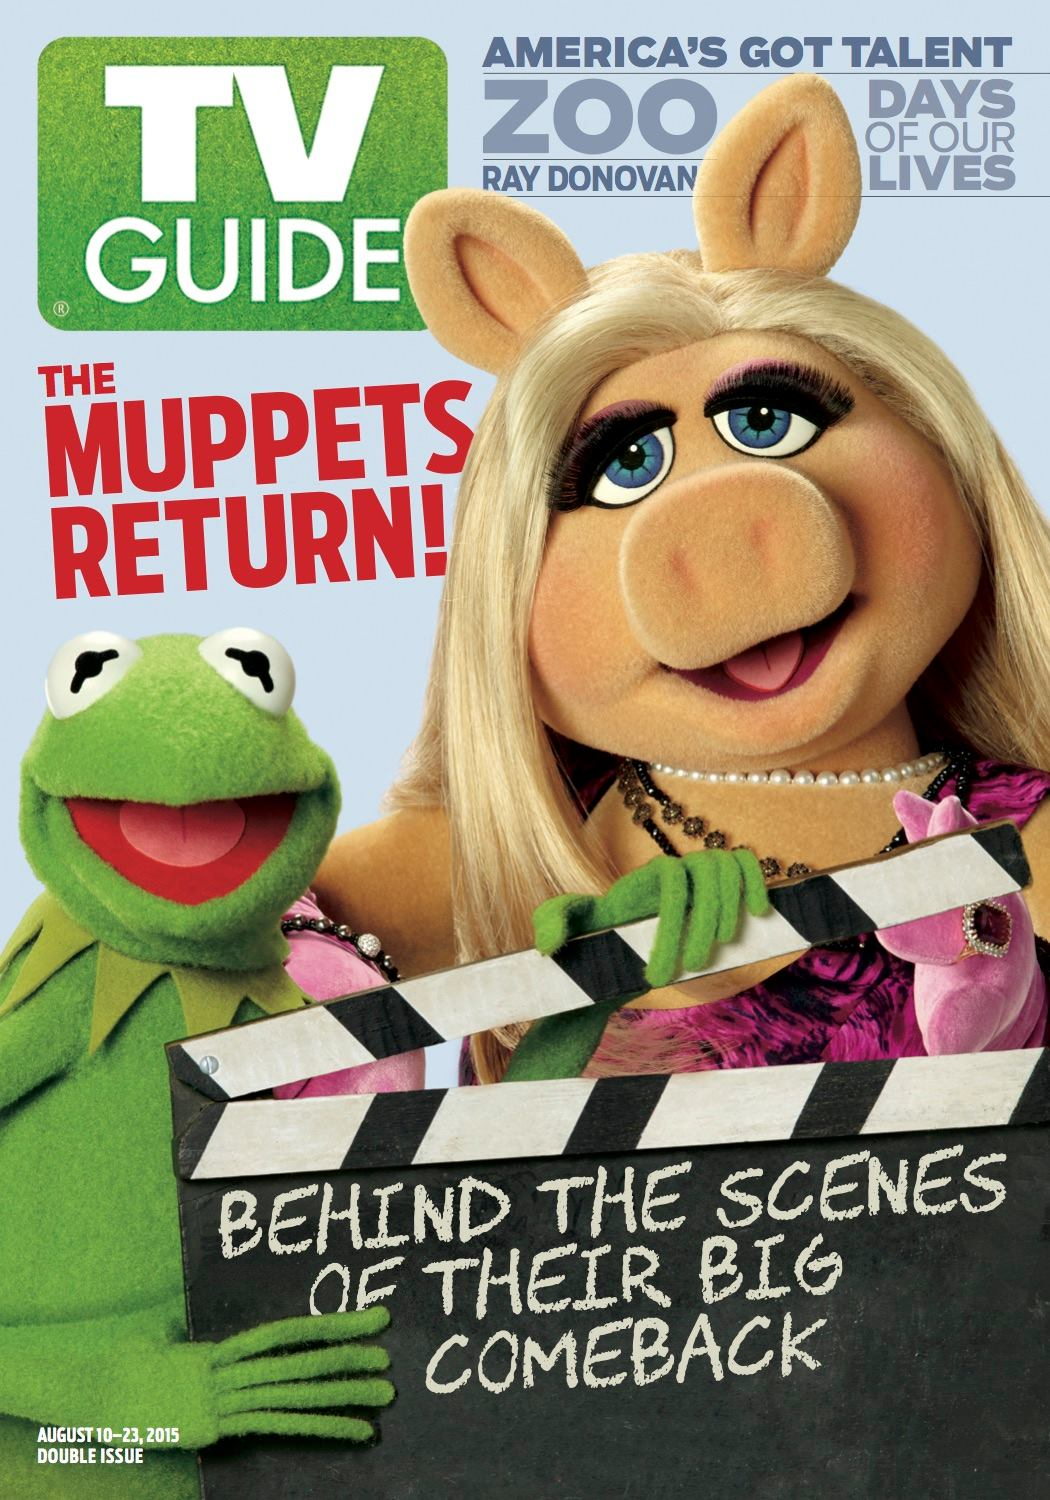 The Muppets (2015) promotion | Muppet Wiki | FANDOM powered